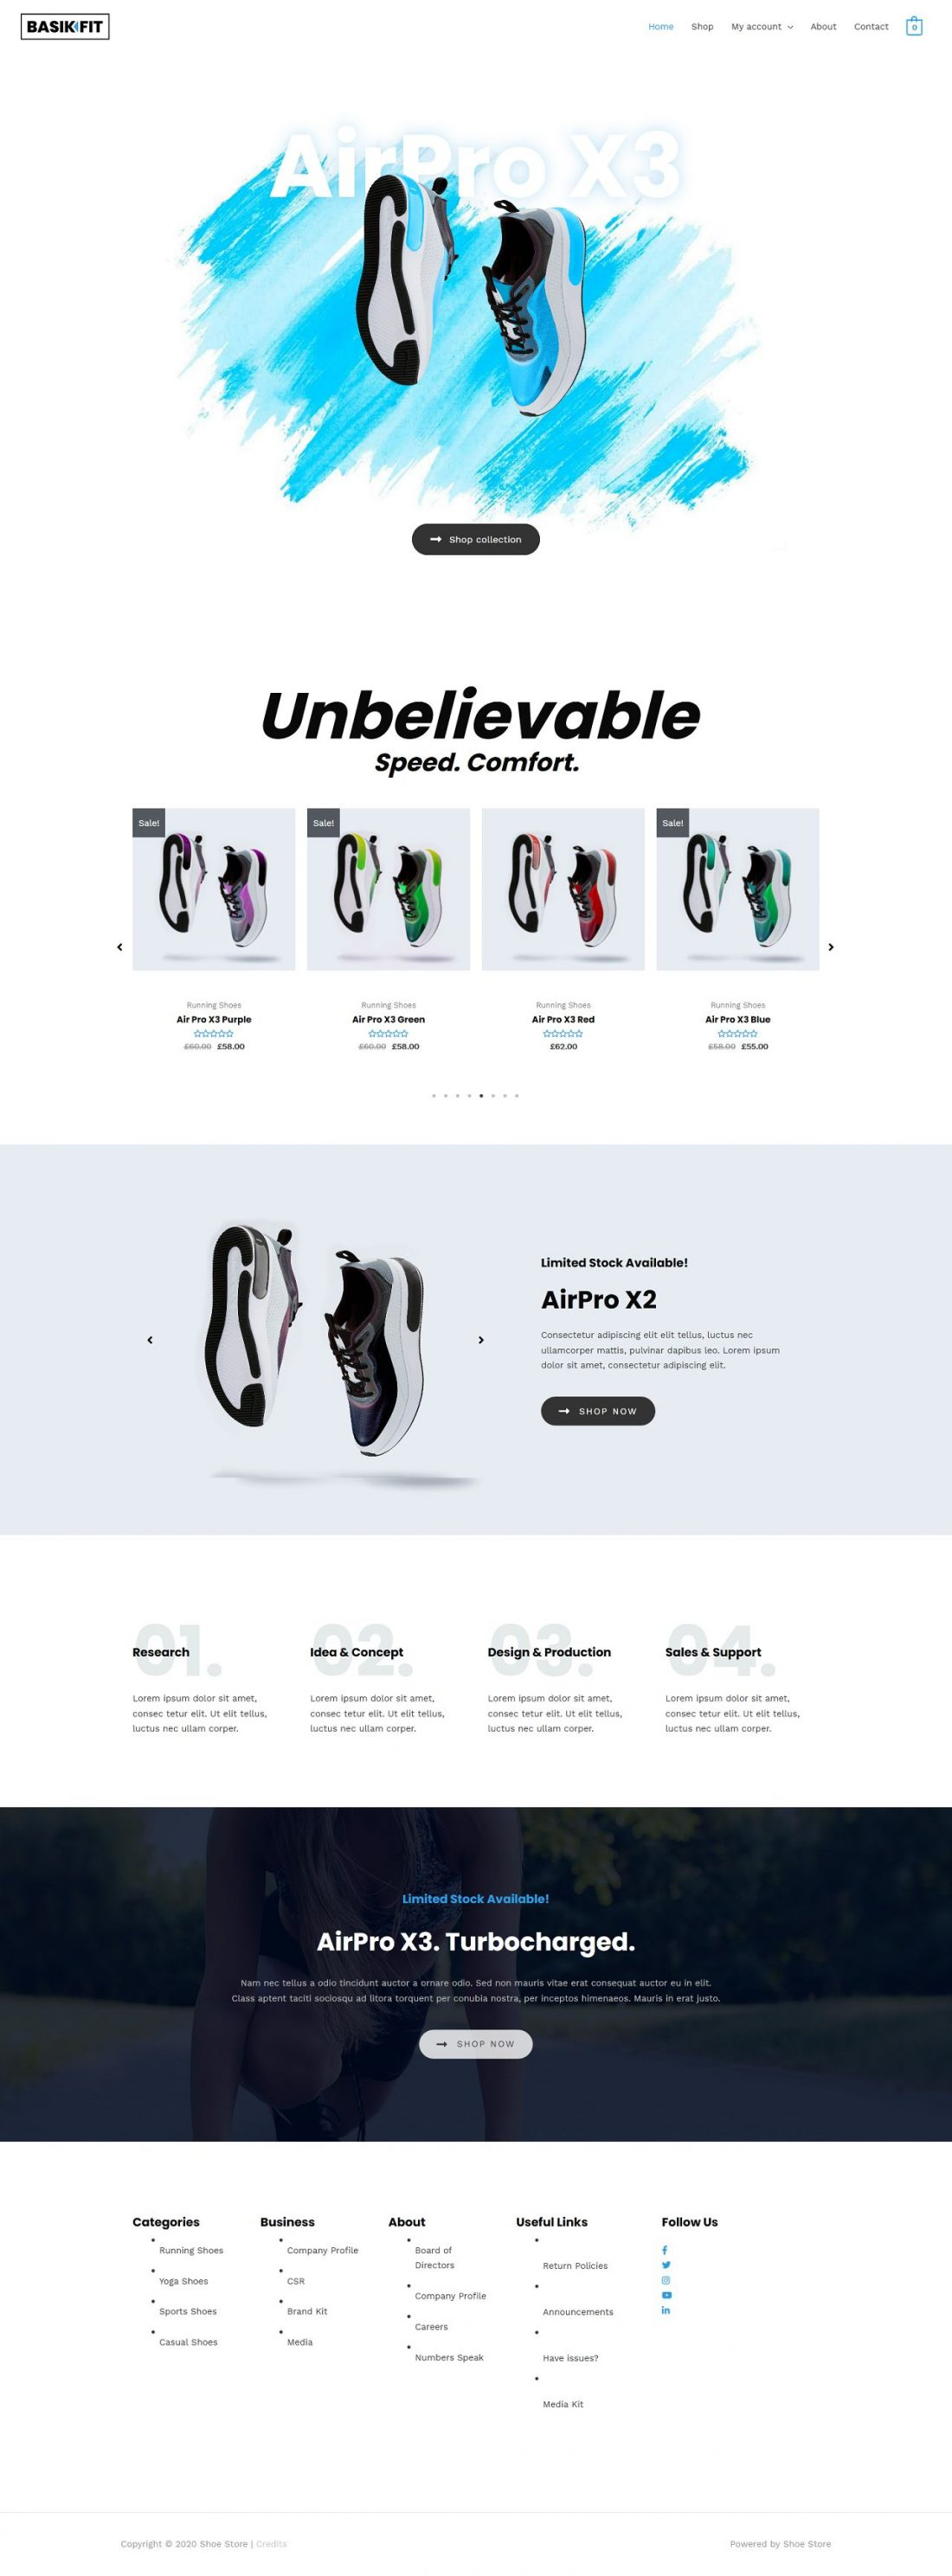 Fagowi.com Website Design Templates For Trainers Shoes Online Shop - Home Page Image